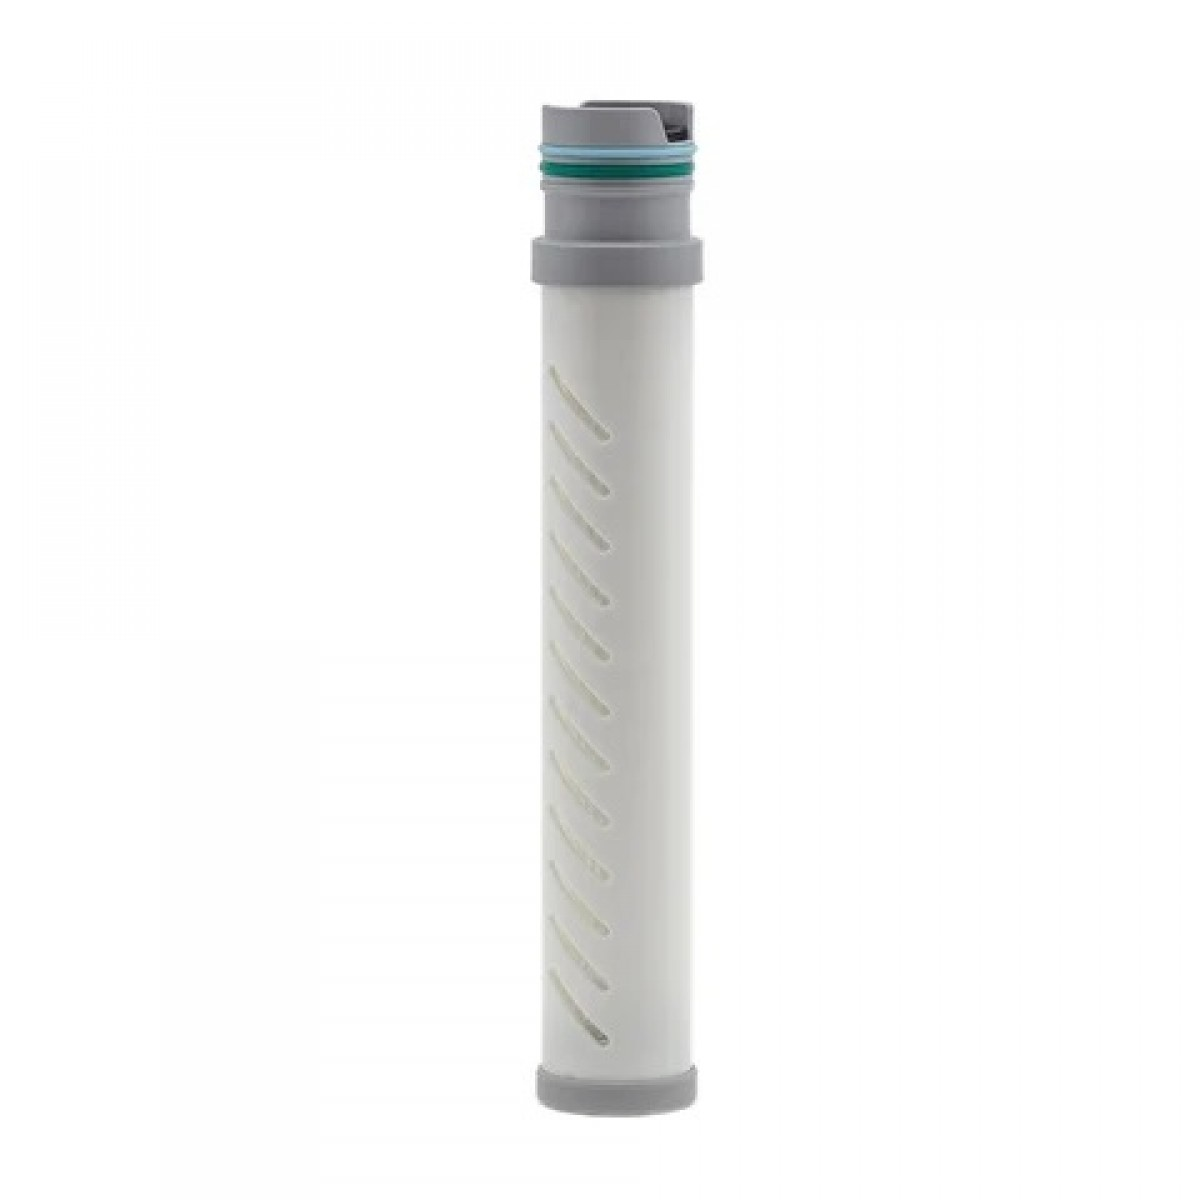 LifeStraw 2-Stage Replacement Filter for LifeStraw Go & LifeStraw Universal